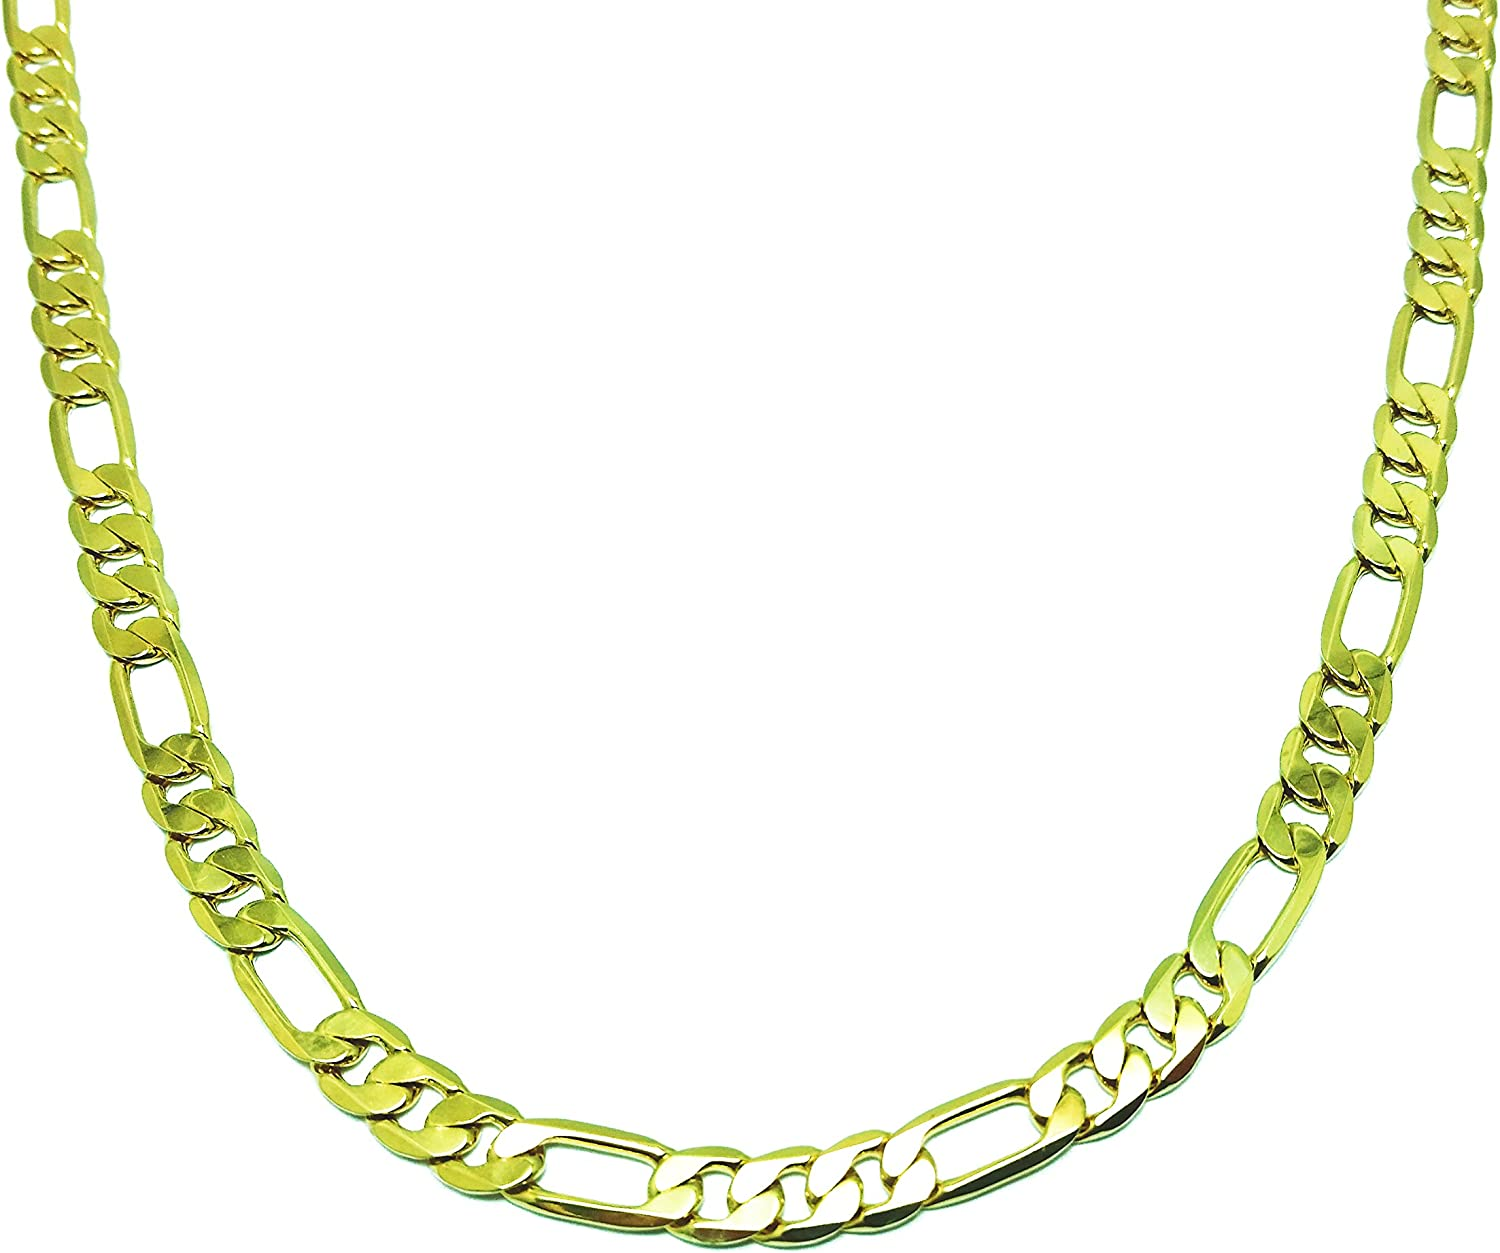 NEW 8mm//24 GOLD PLATED FIGARO LINK NECKLACE CHAIN #218//24